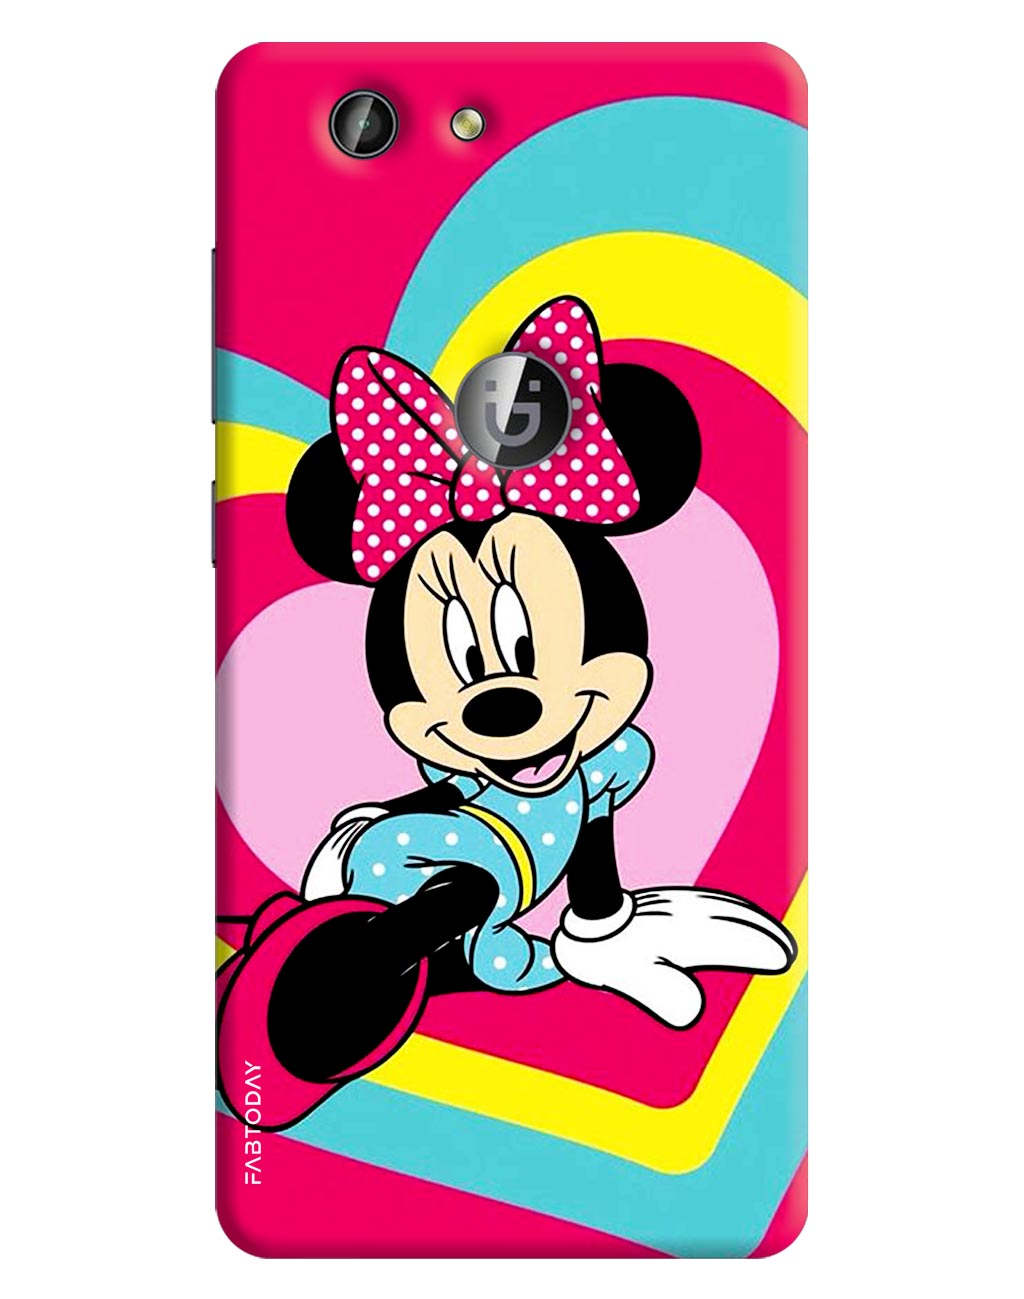 Mini Mouse Back Cover for Gionee F103 Pro